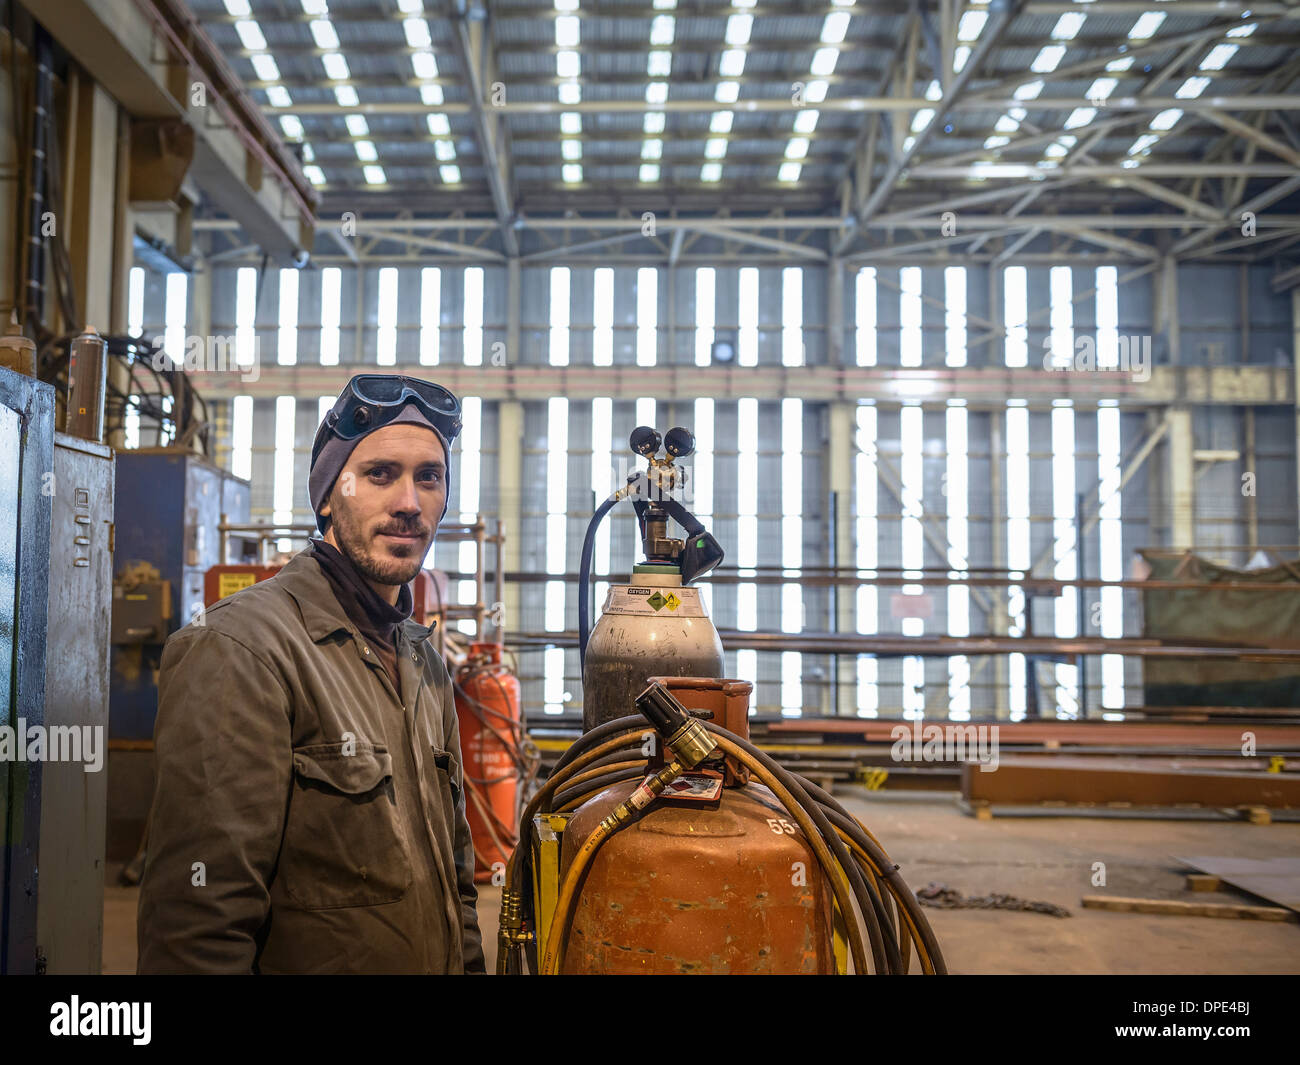 2f40702ad6c Portrait of welder wearing overalls and safety goggles in factory - Stock  Image